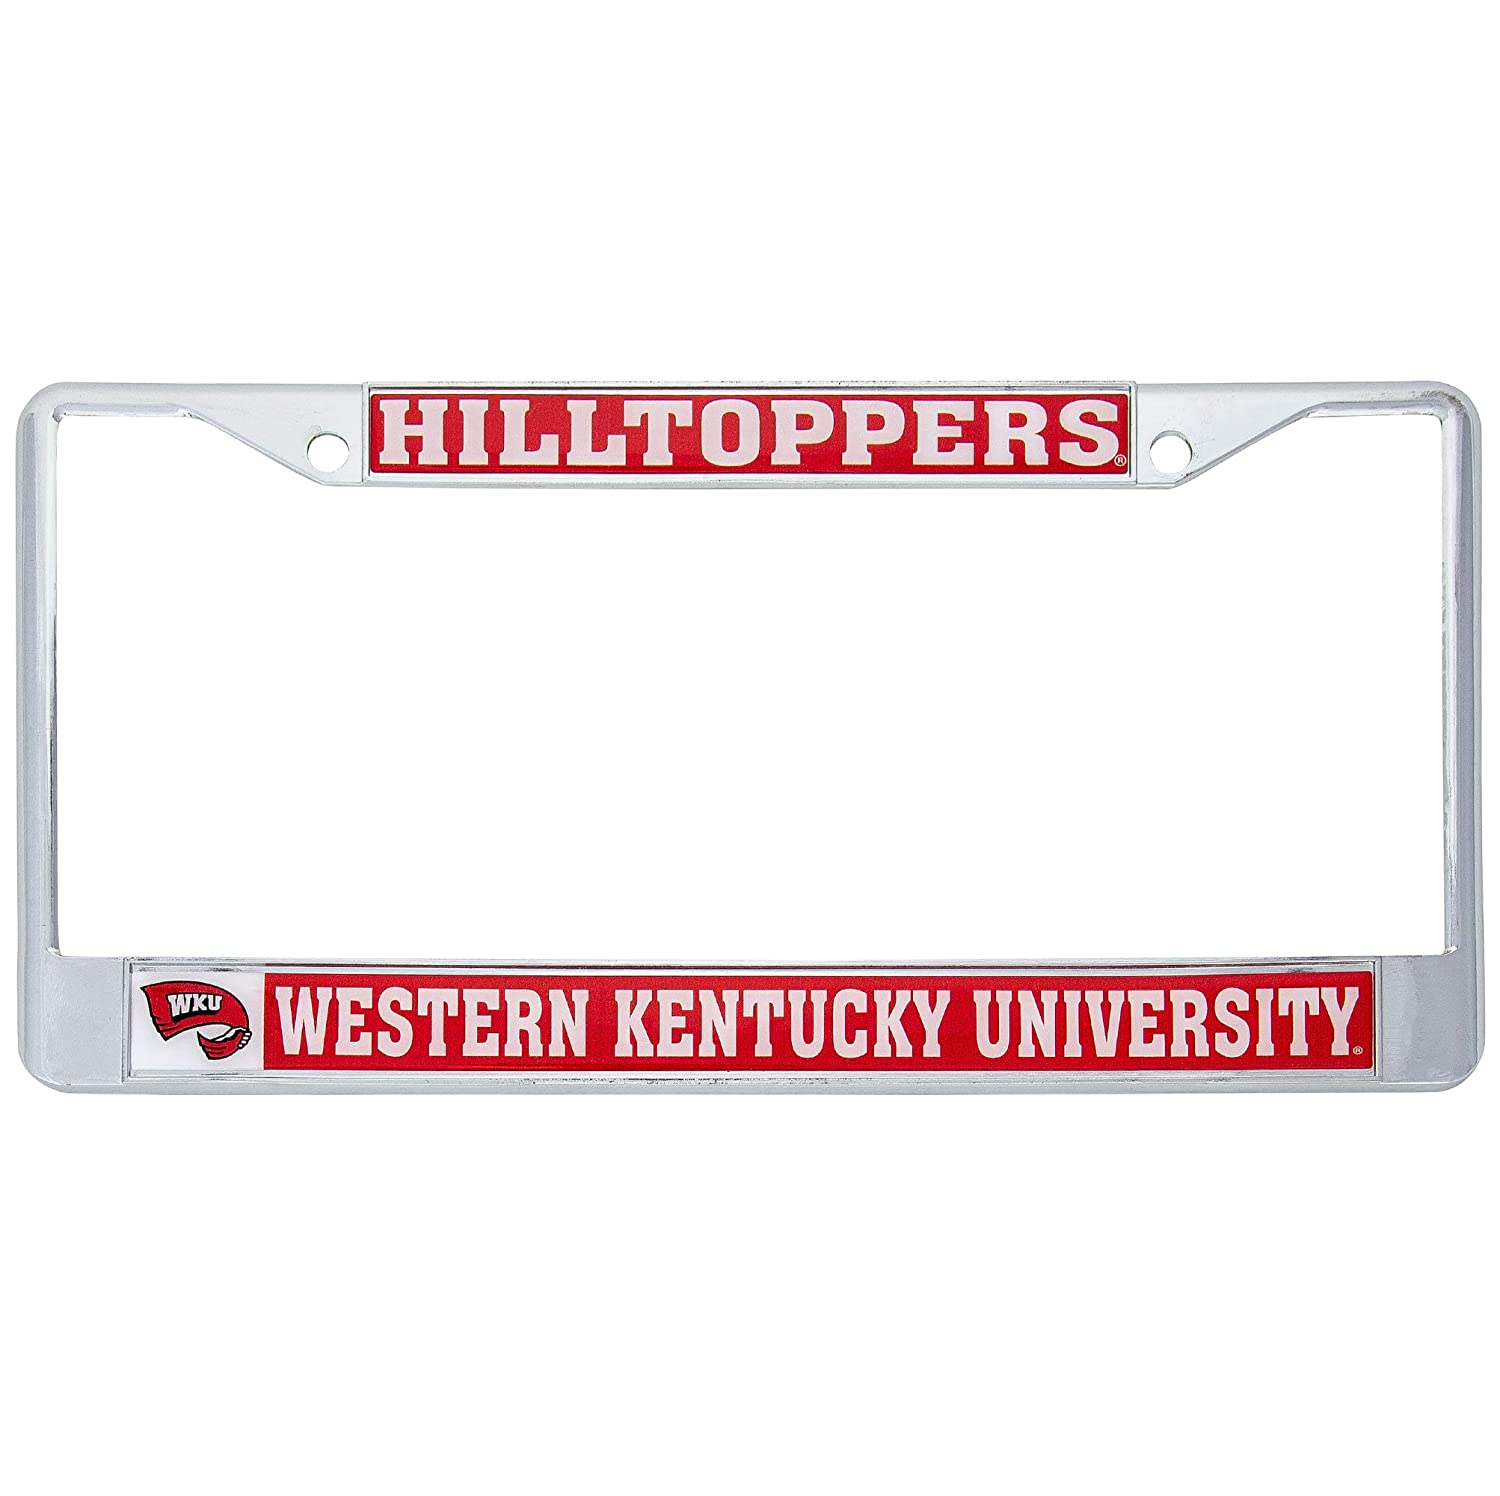 Mascot Western Kentucky University Hilltoppers Metal License Plate Frame for Front Back of Car Officially Licensed